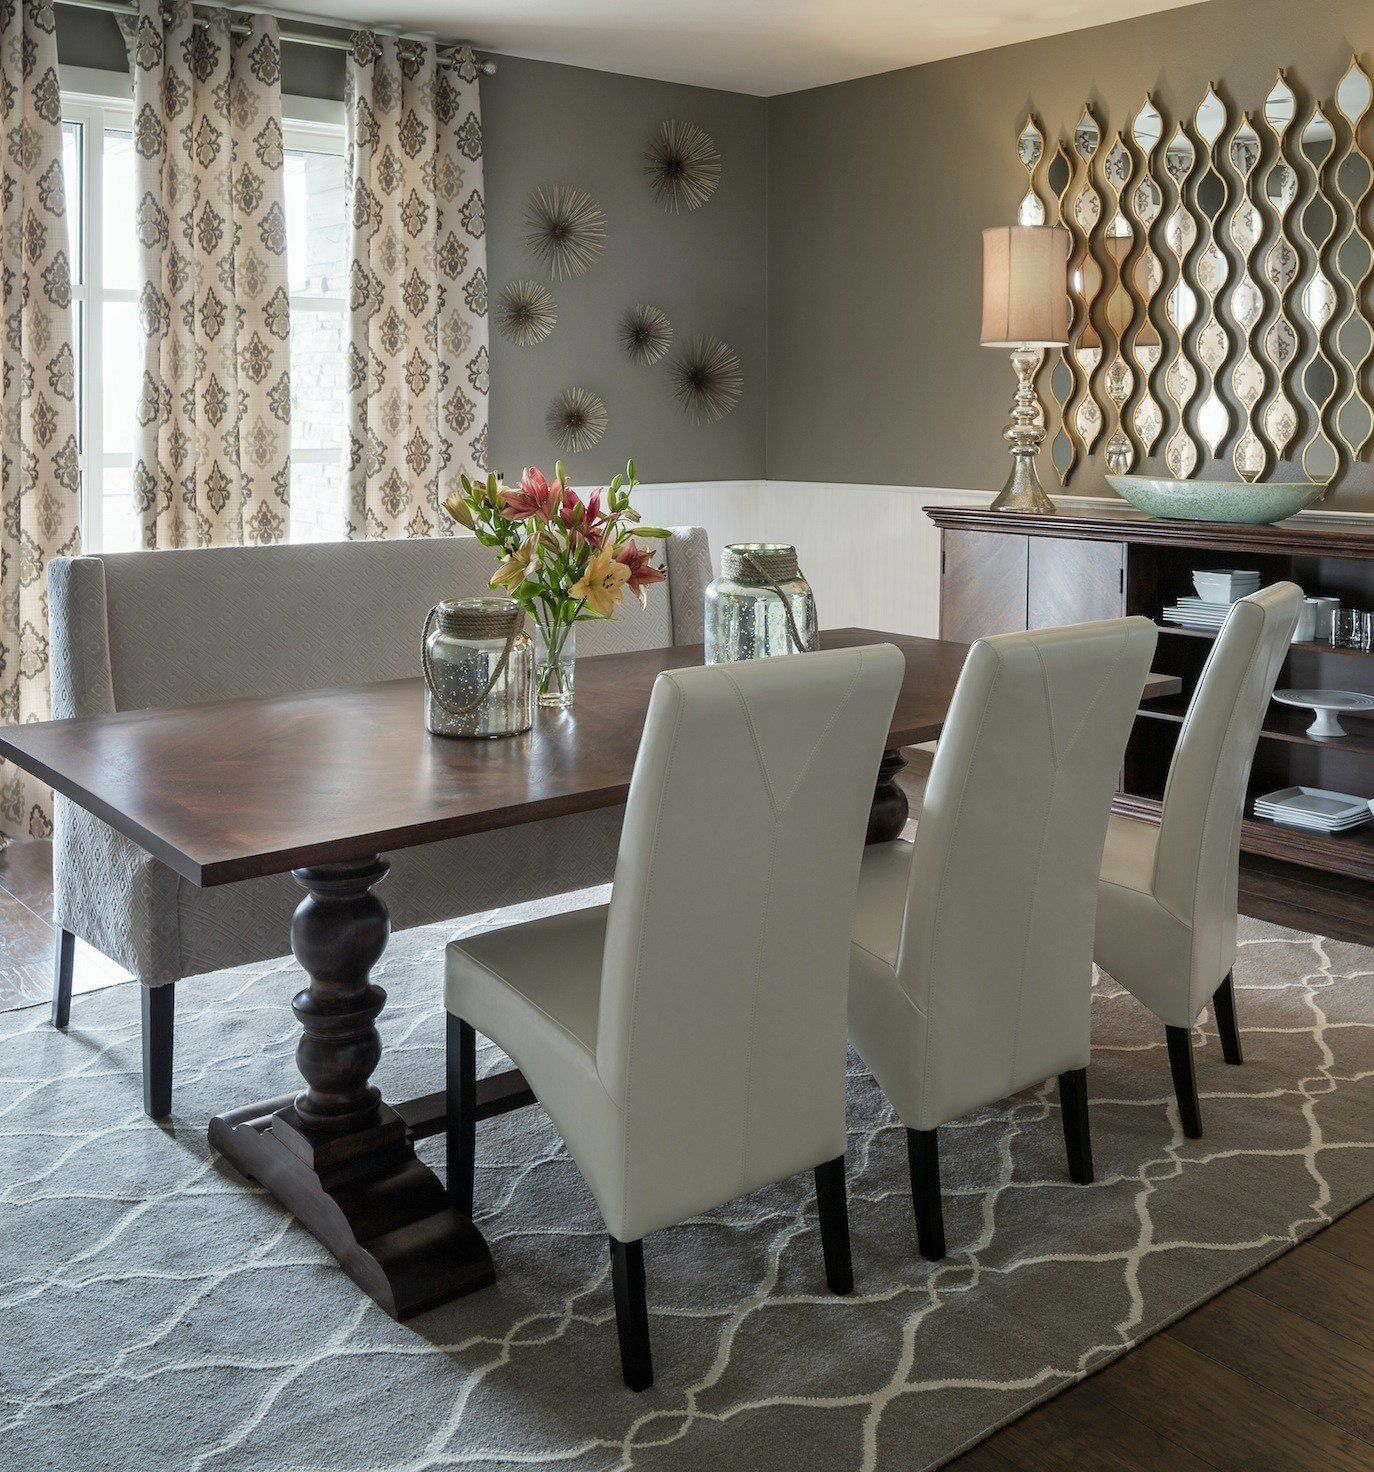 Furnitures Fashion Small Dining Room Furniture Design: Pin By Andrea Krisko Robach On Dining Experience